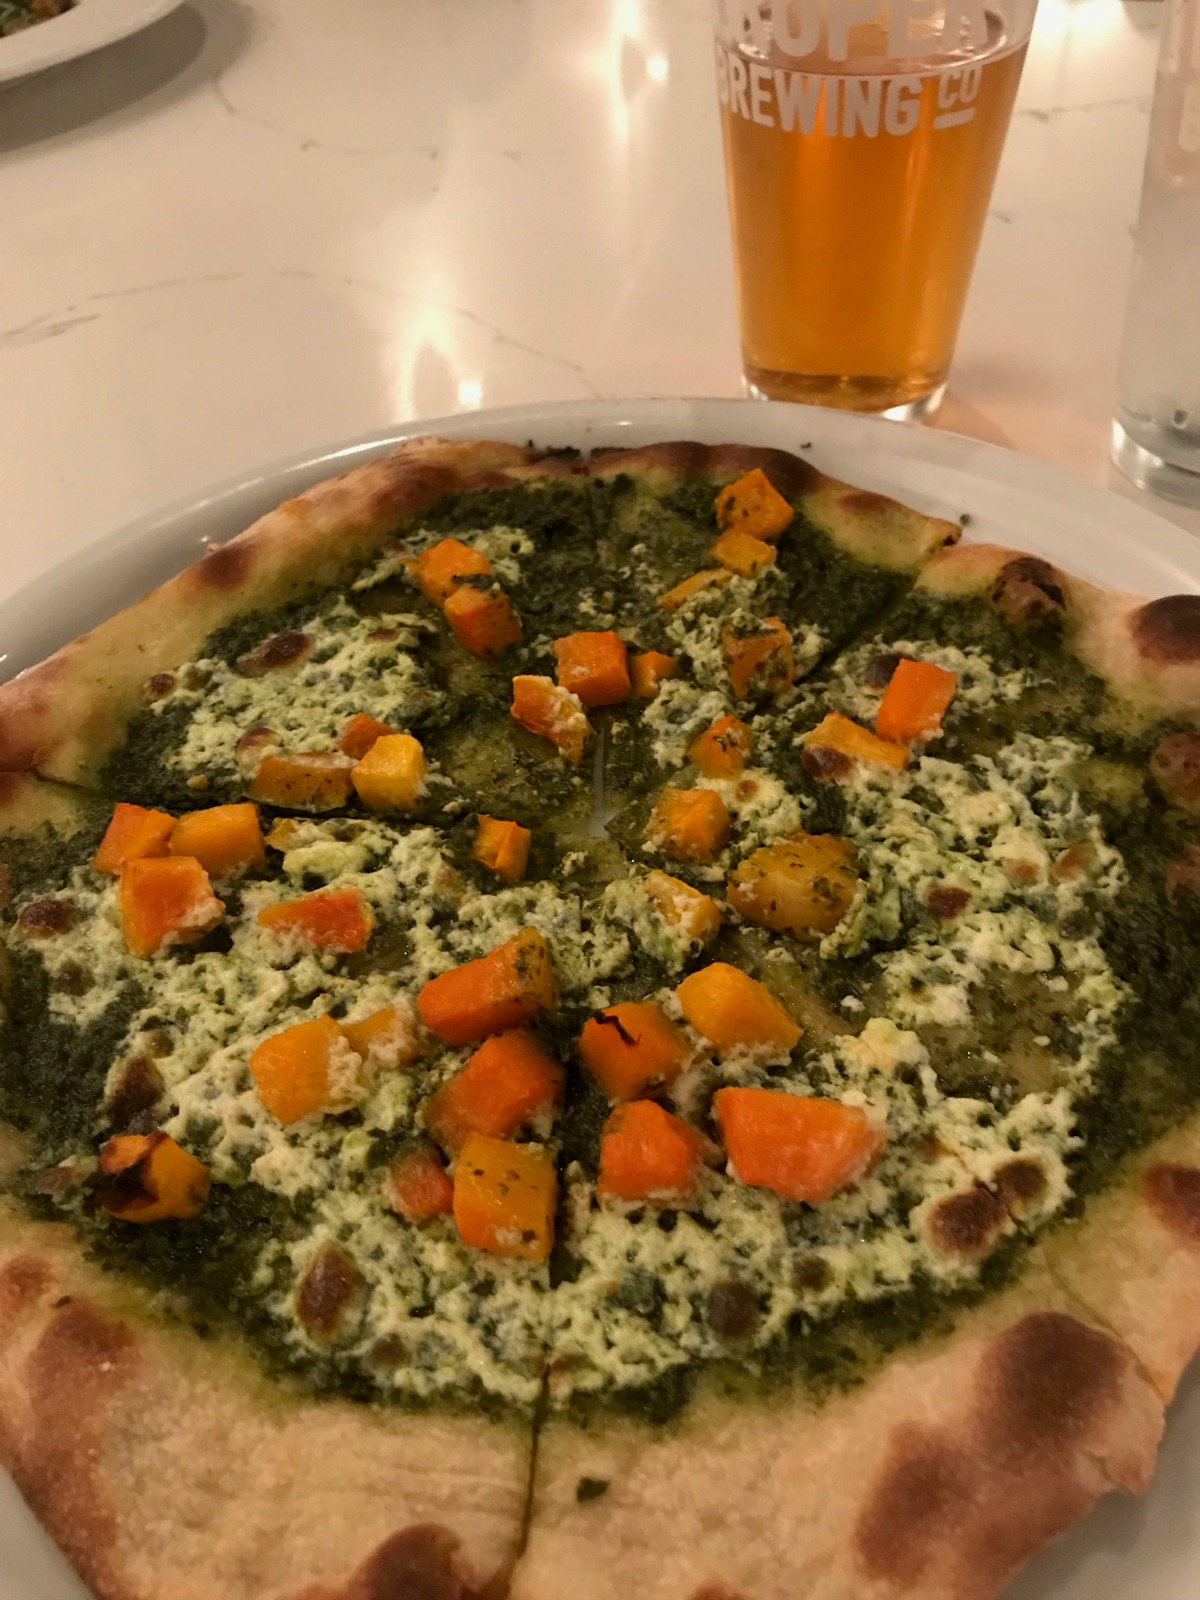 Smoked ricotta pesto pizza